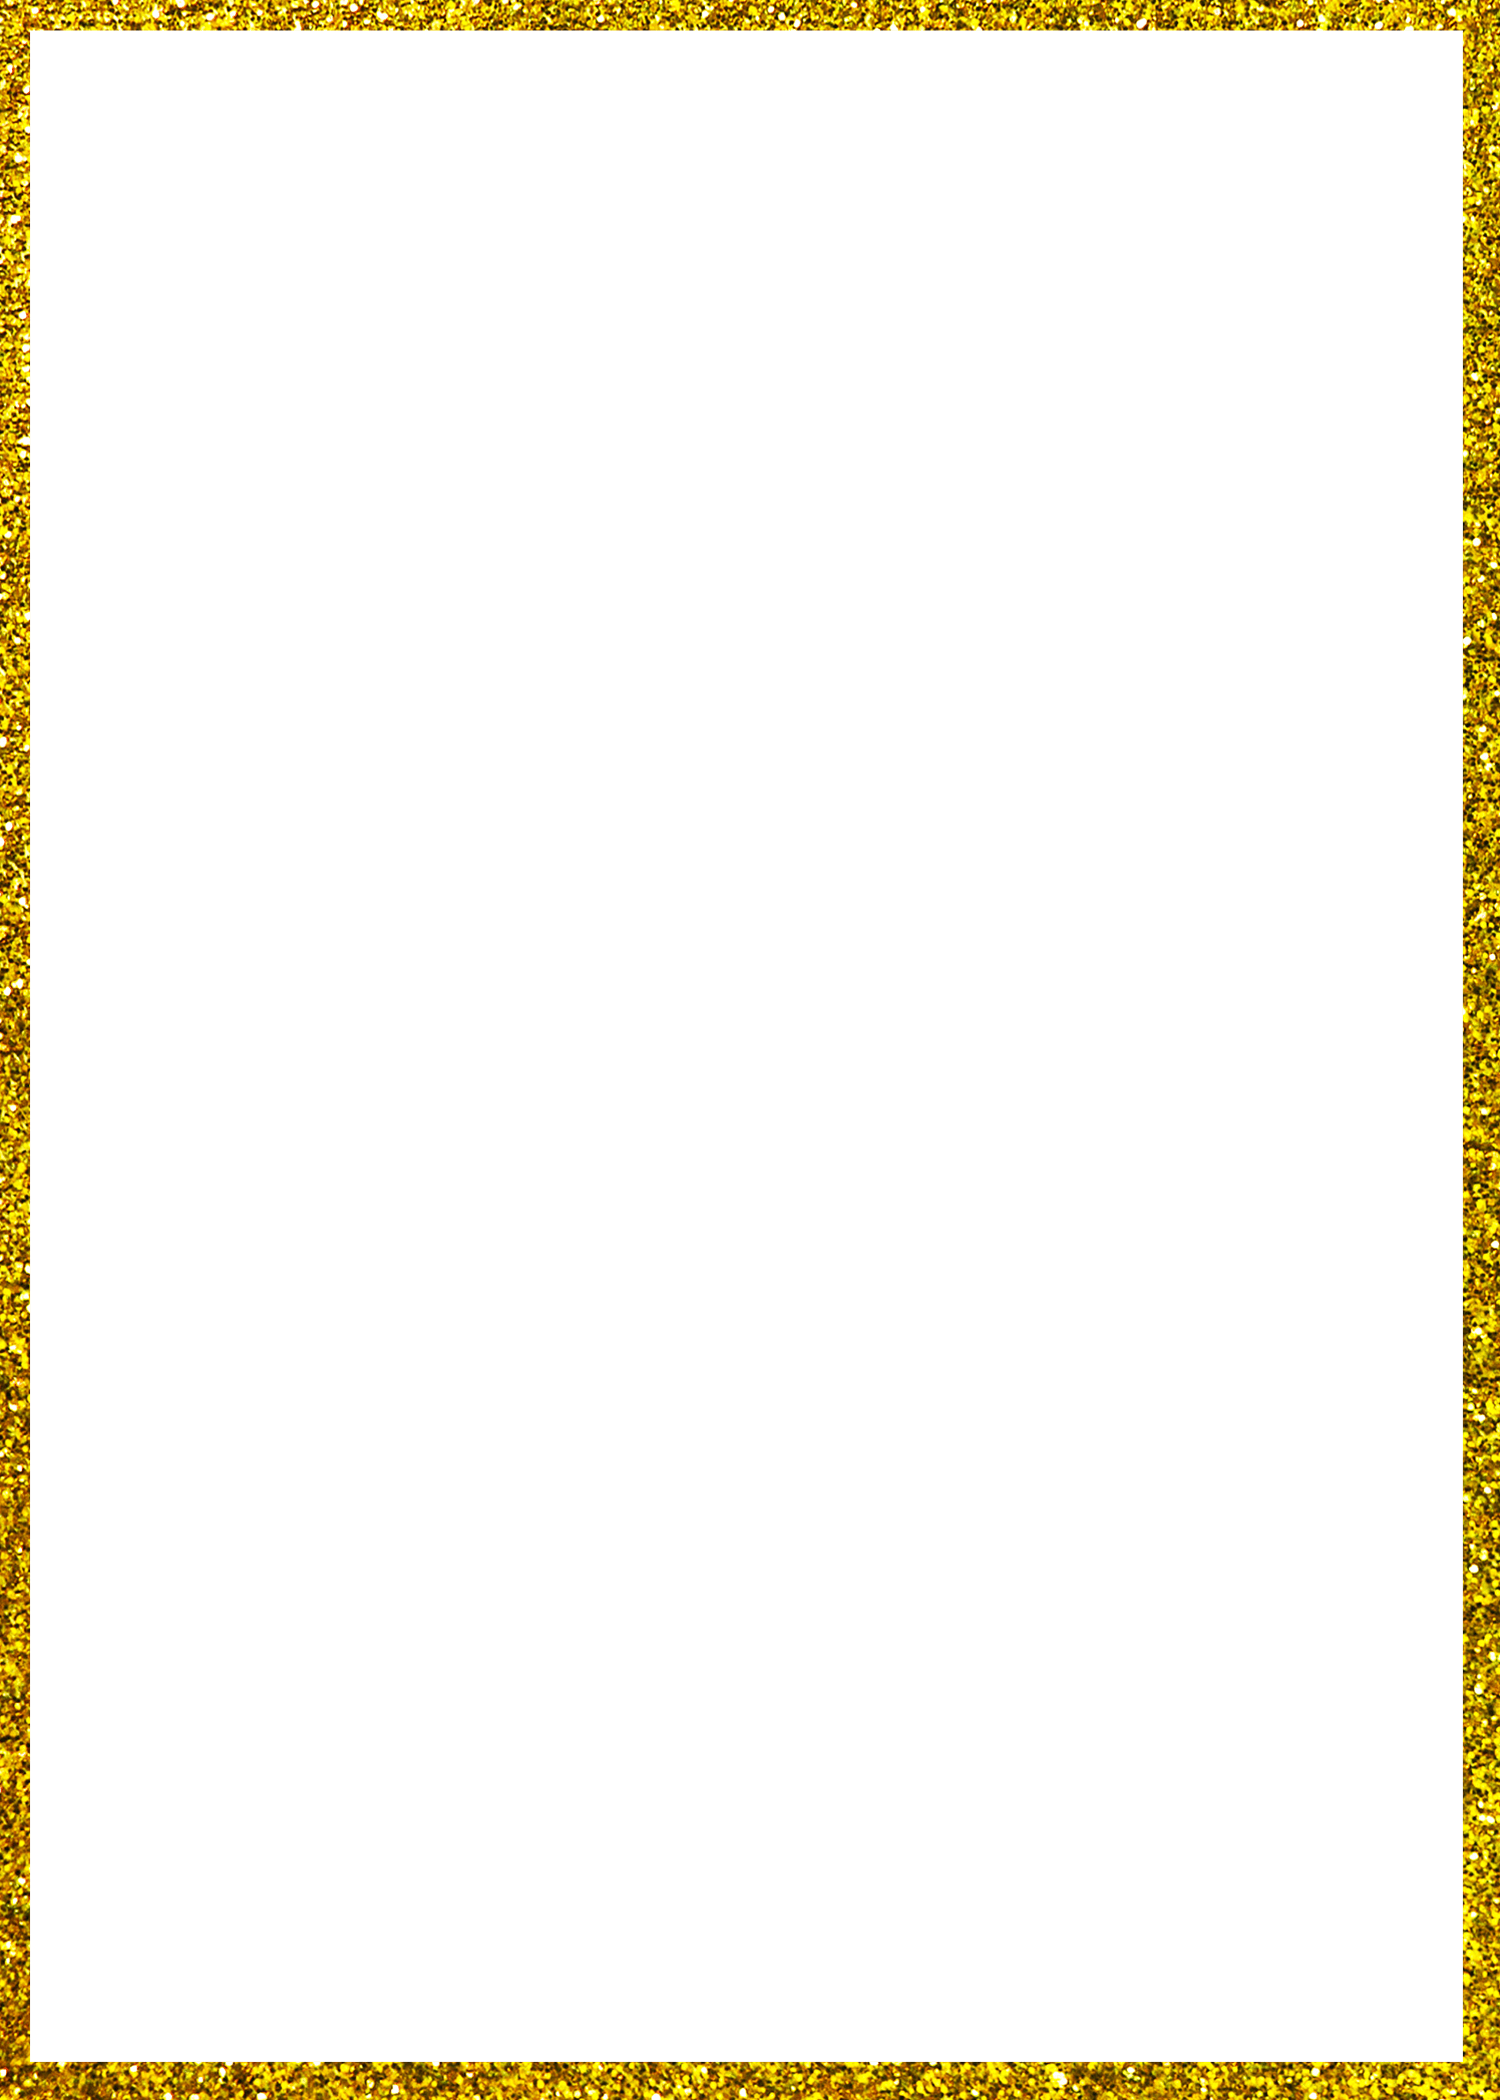 Rectangle border png. Pbl frame gold glitter